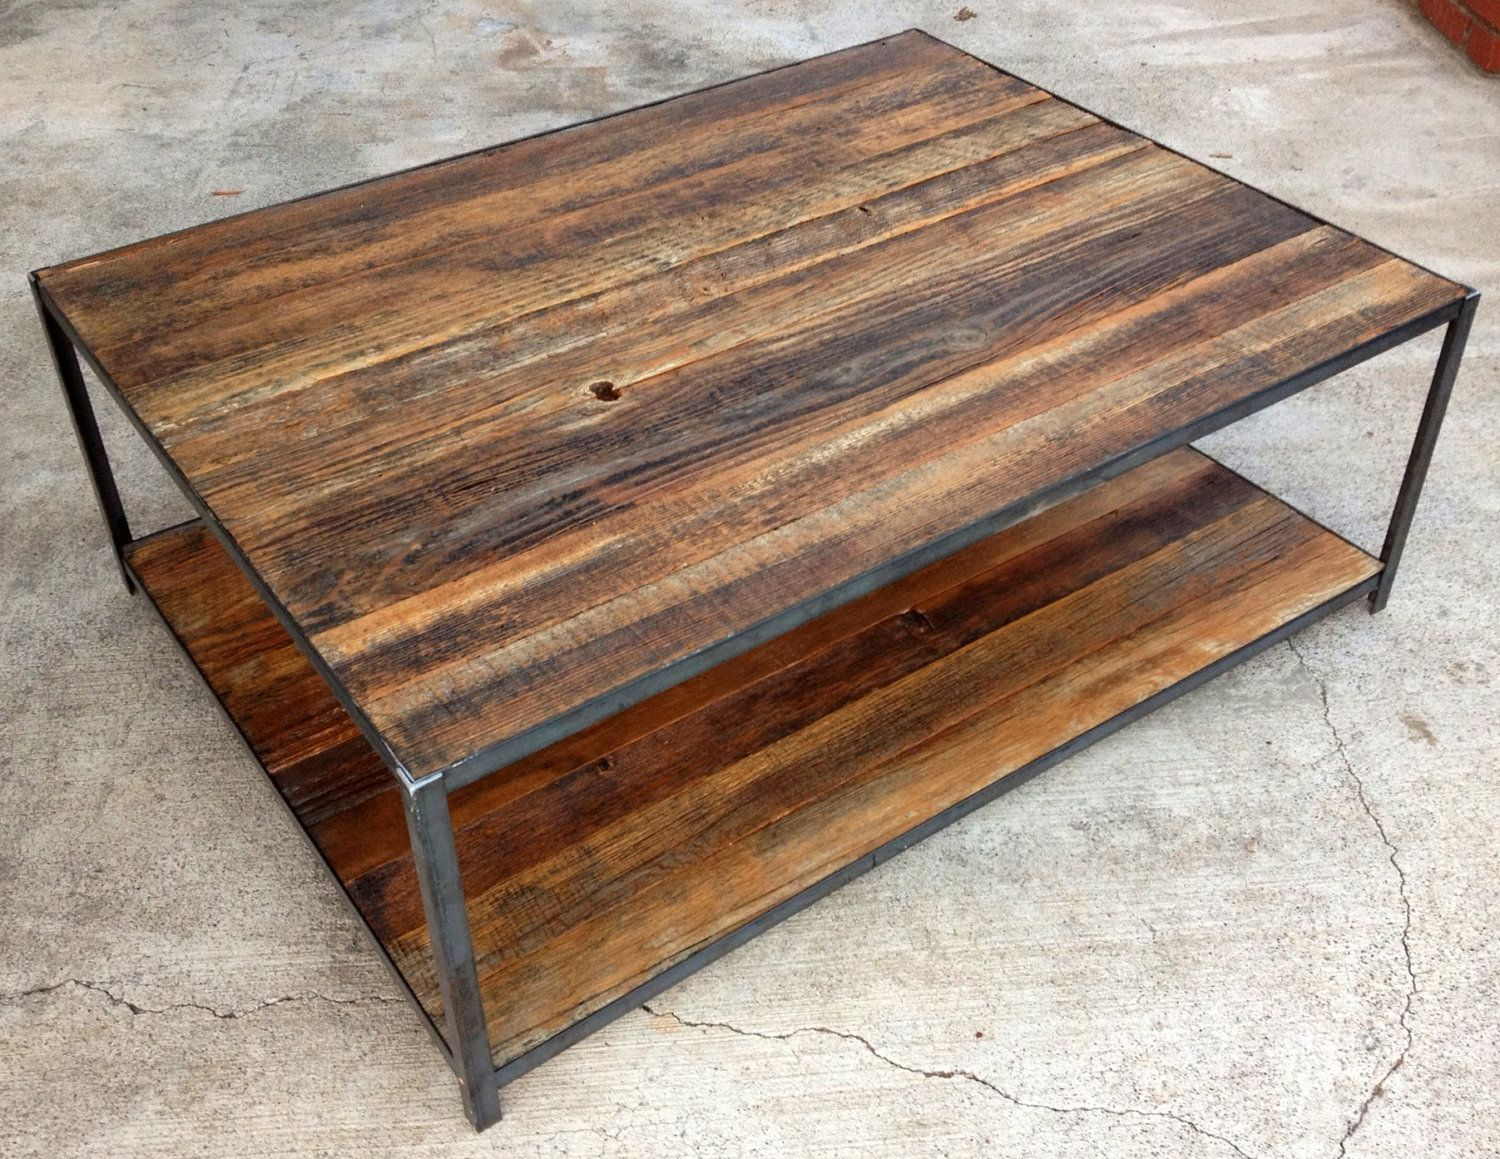 Reclaimed wood and angle iron coffee table  via